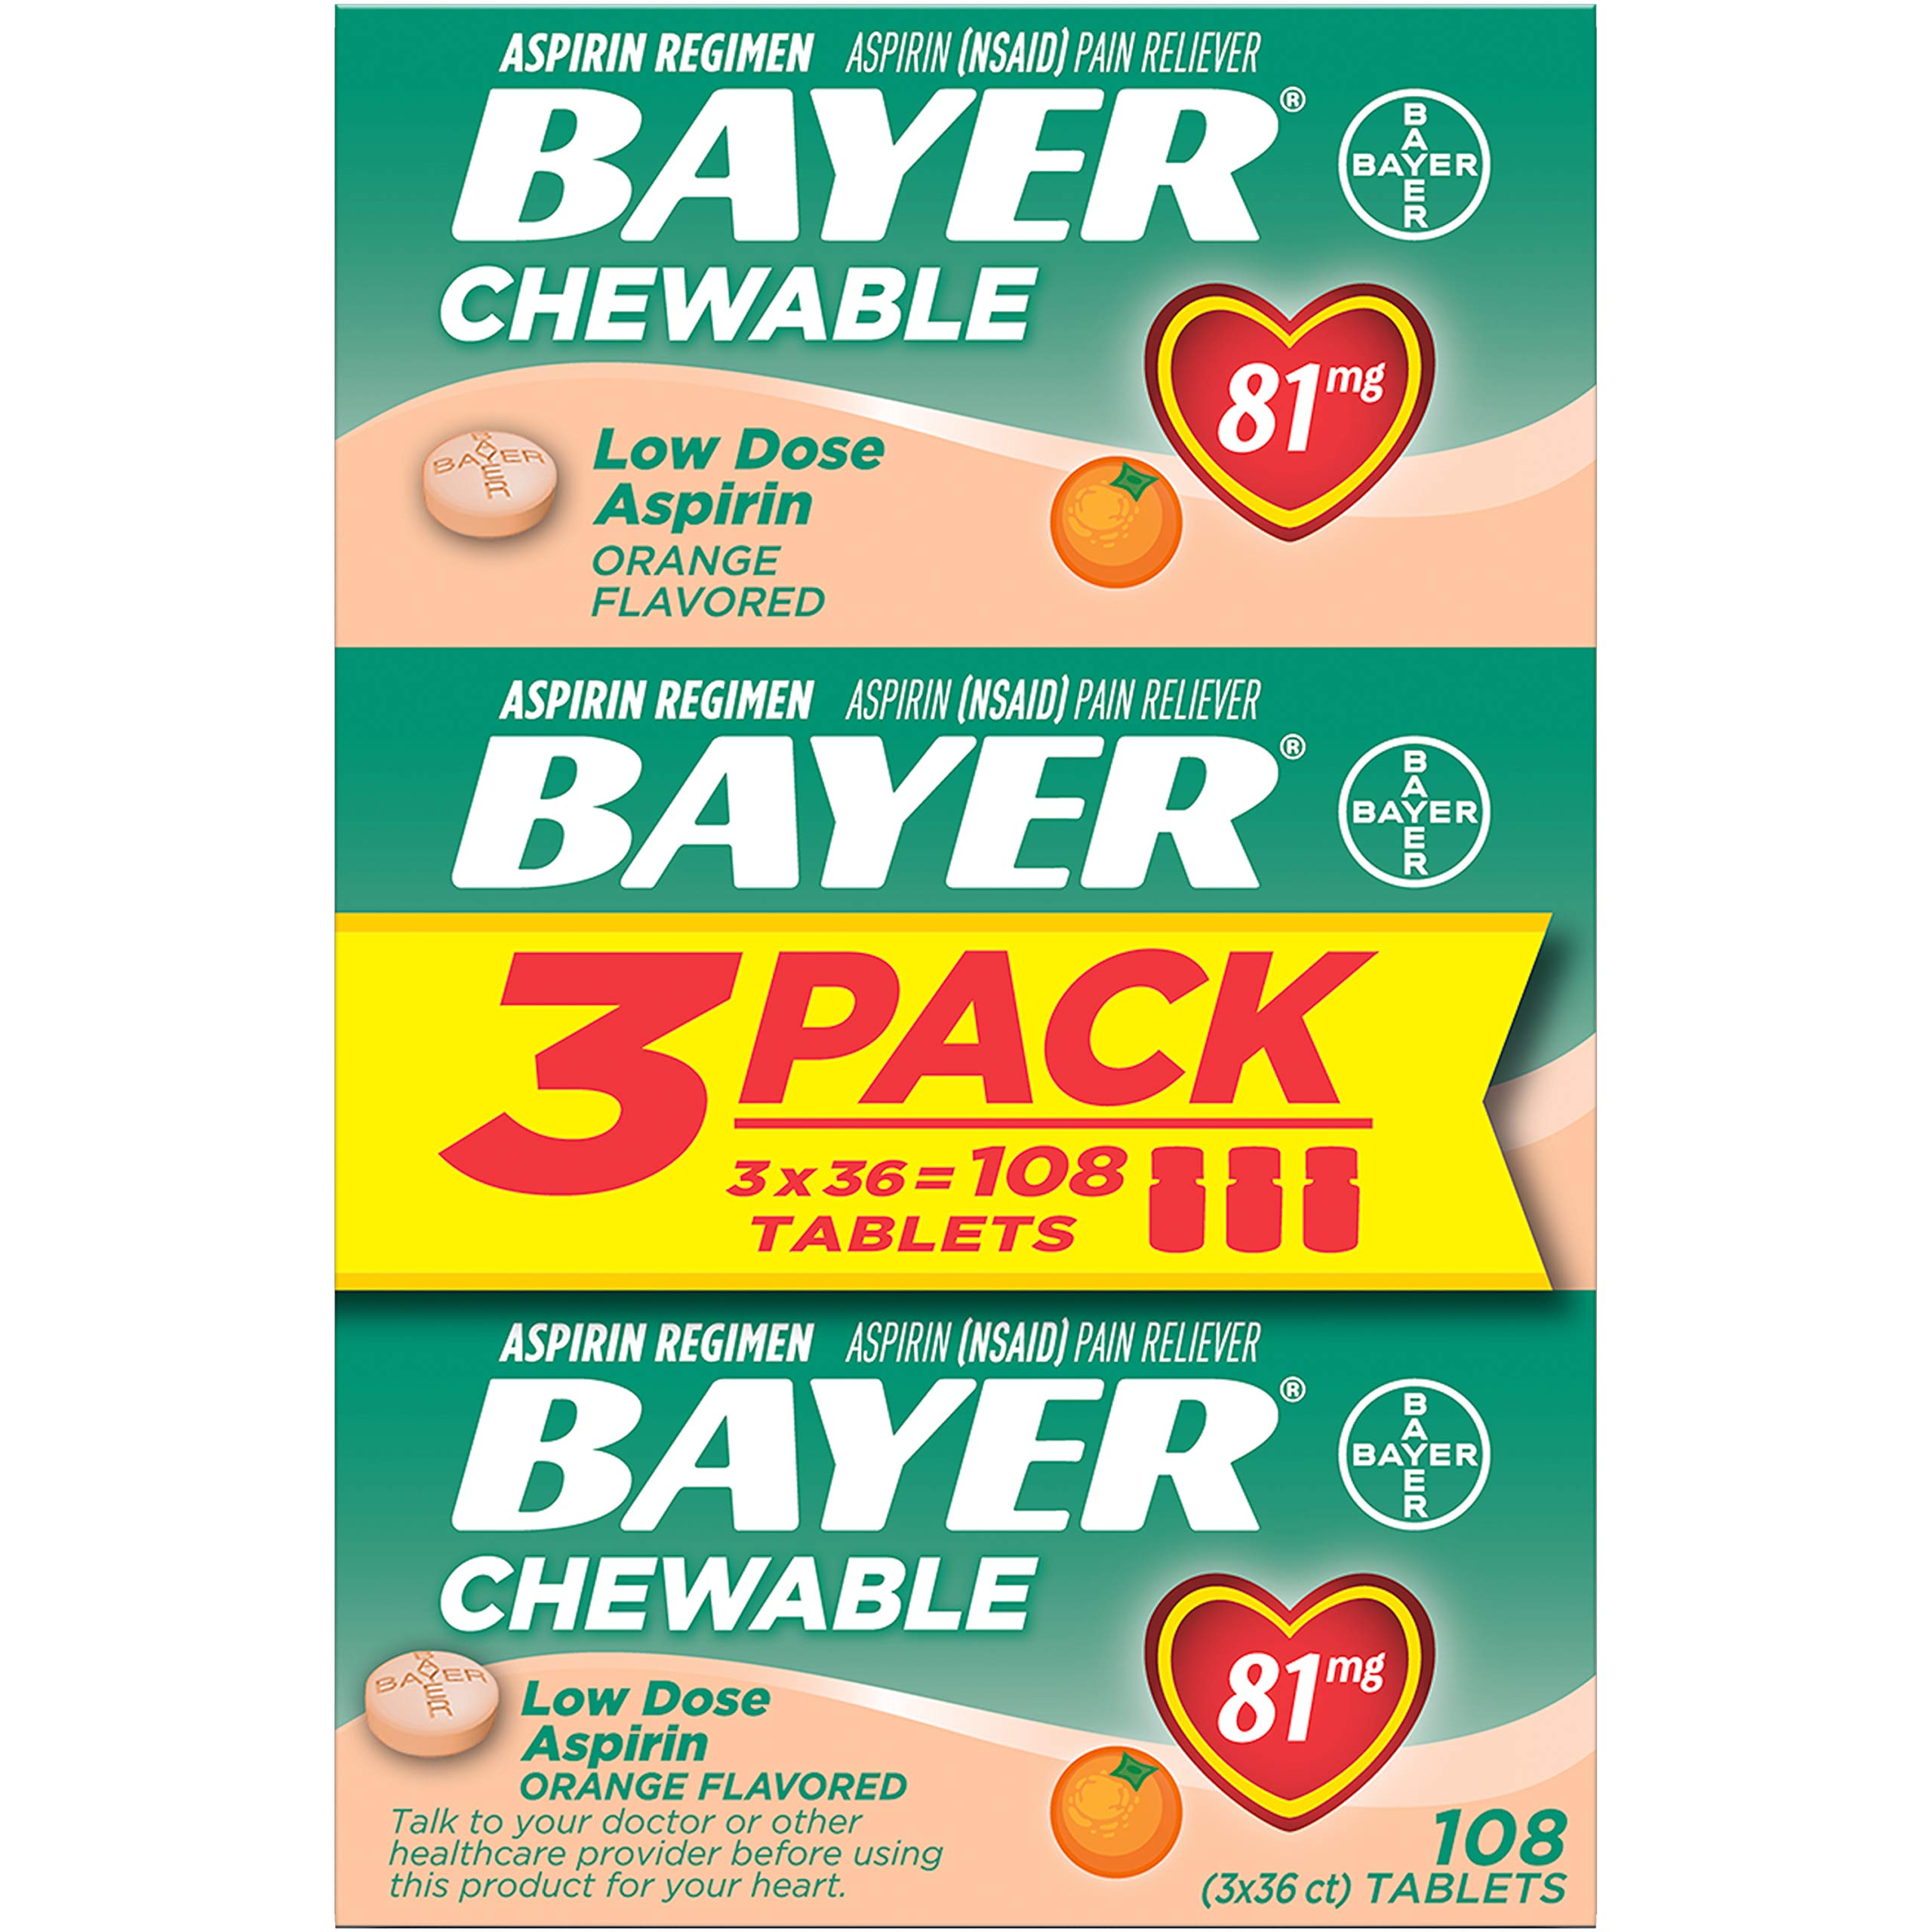 Aspirin Regimen Bayer 81mg Chewable Tablets | #1 Doctor Recommended Aspirin Brand | Pain Reliever | Orange Flavor | 108 Count (36 Count (Pack of 3))